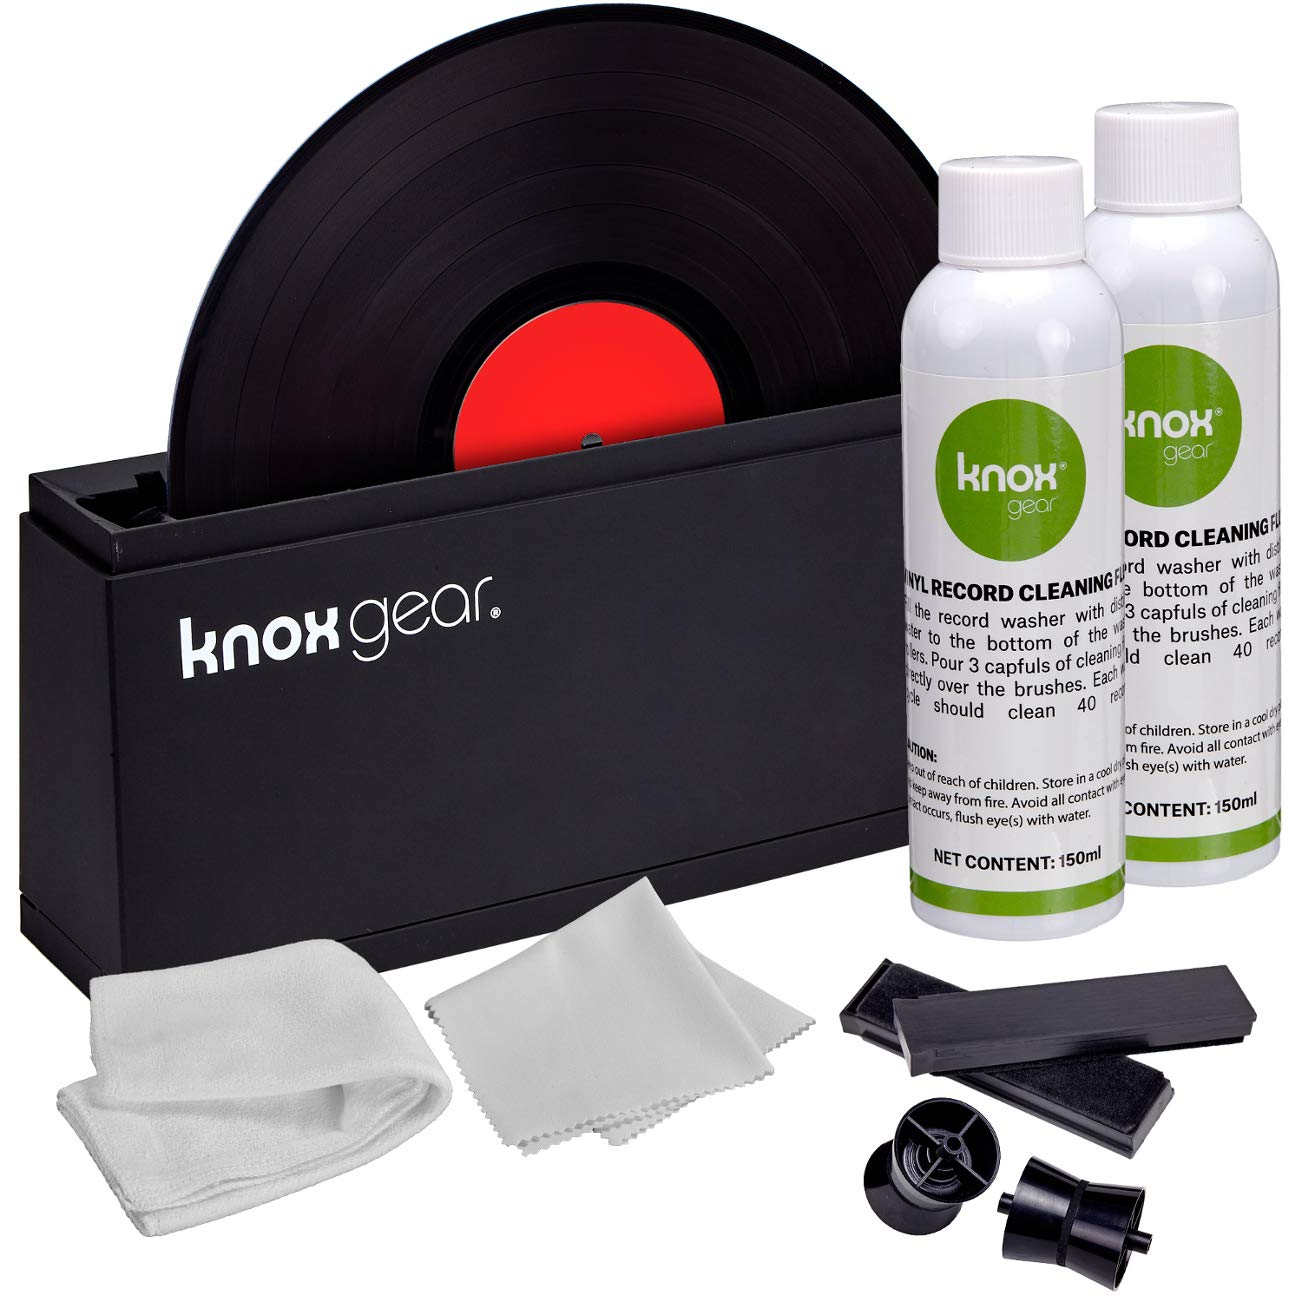 Knox Vinyl Record Cleaner Spin Kit - Washer Basin, Air Drying Rack, Cleaning Fluid, Brushes and Rollers Dryer and Microfiber Cloths - Washes and Dries 7'', 10'' and 12'' Discs by Knox Gear